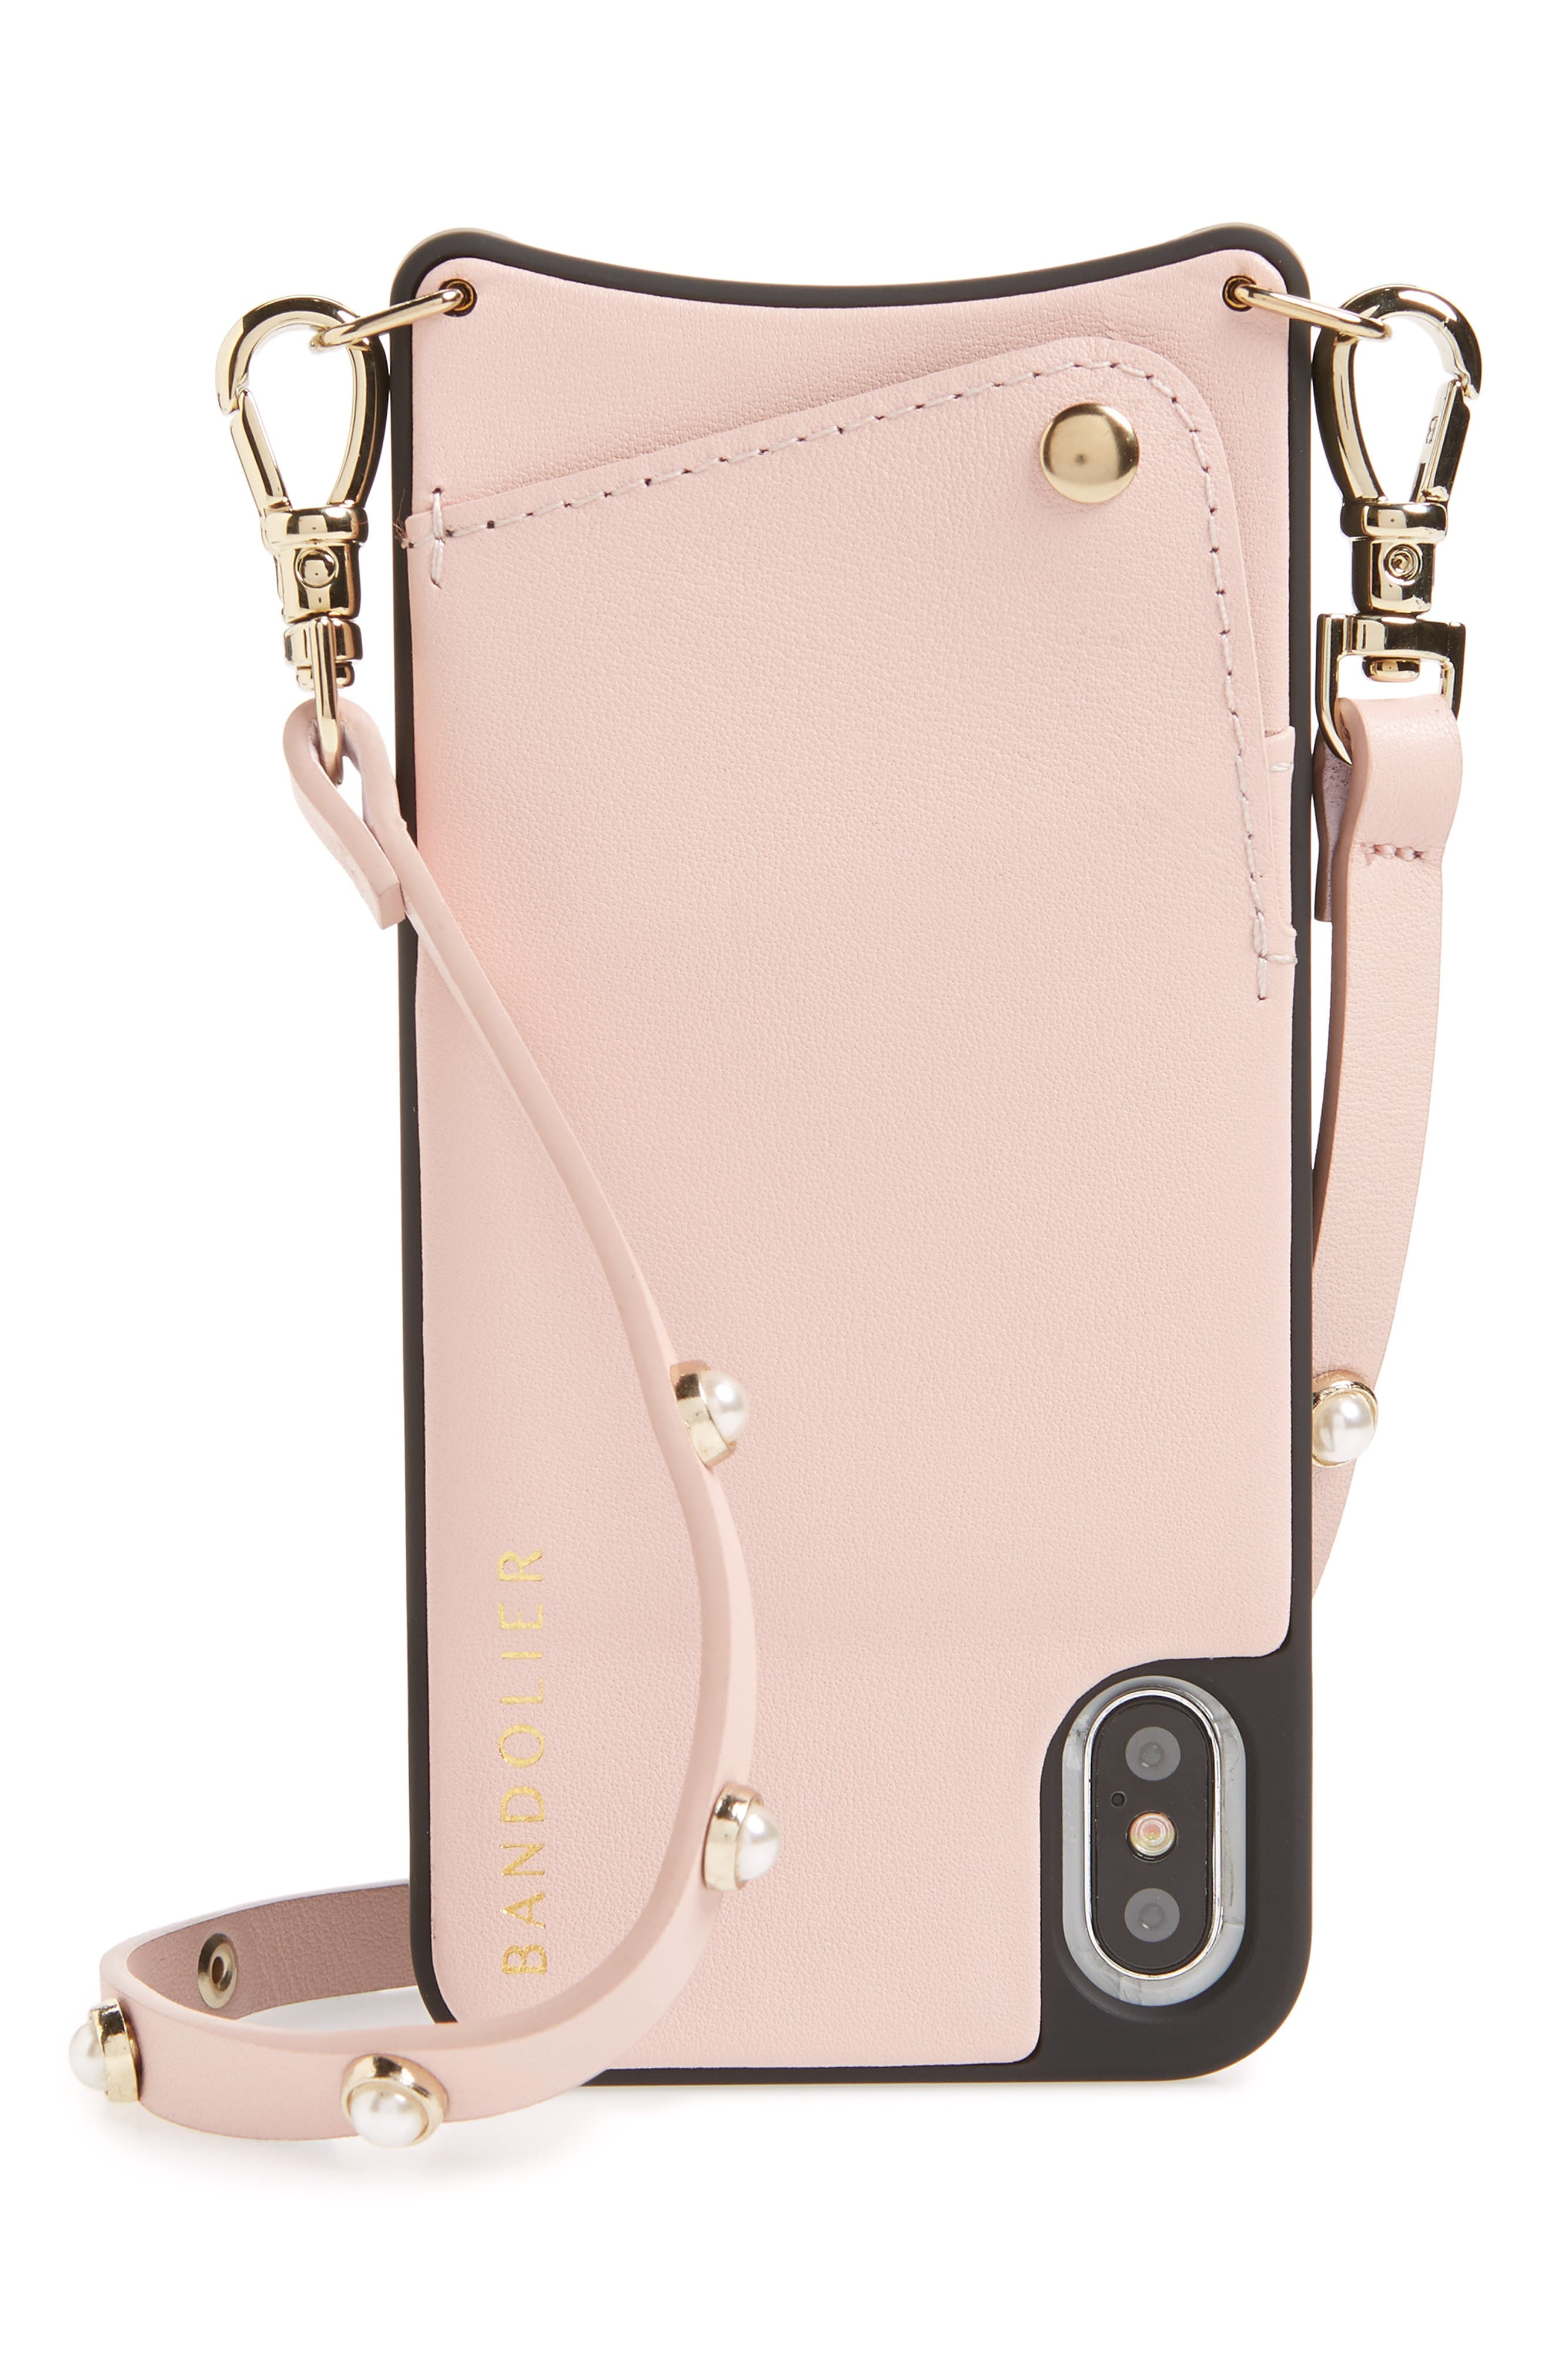 Claire Leather iPhone X Crossbody Case,                             Main thumbnail 1, color,                             Pink/ Pearl